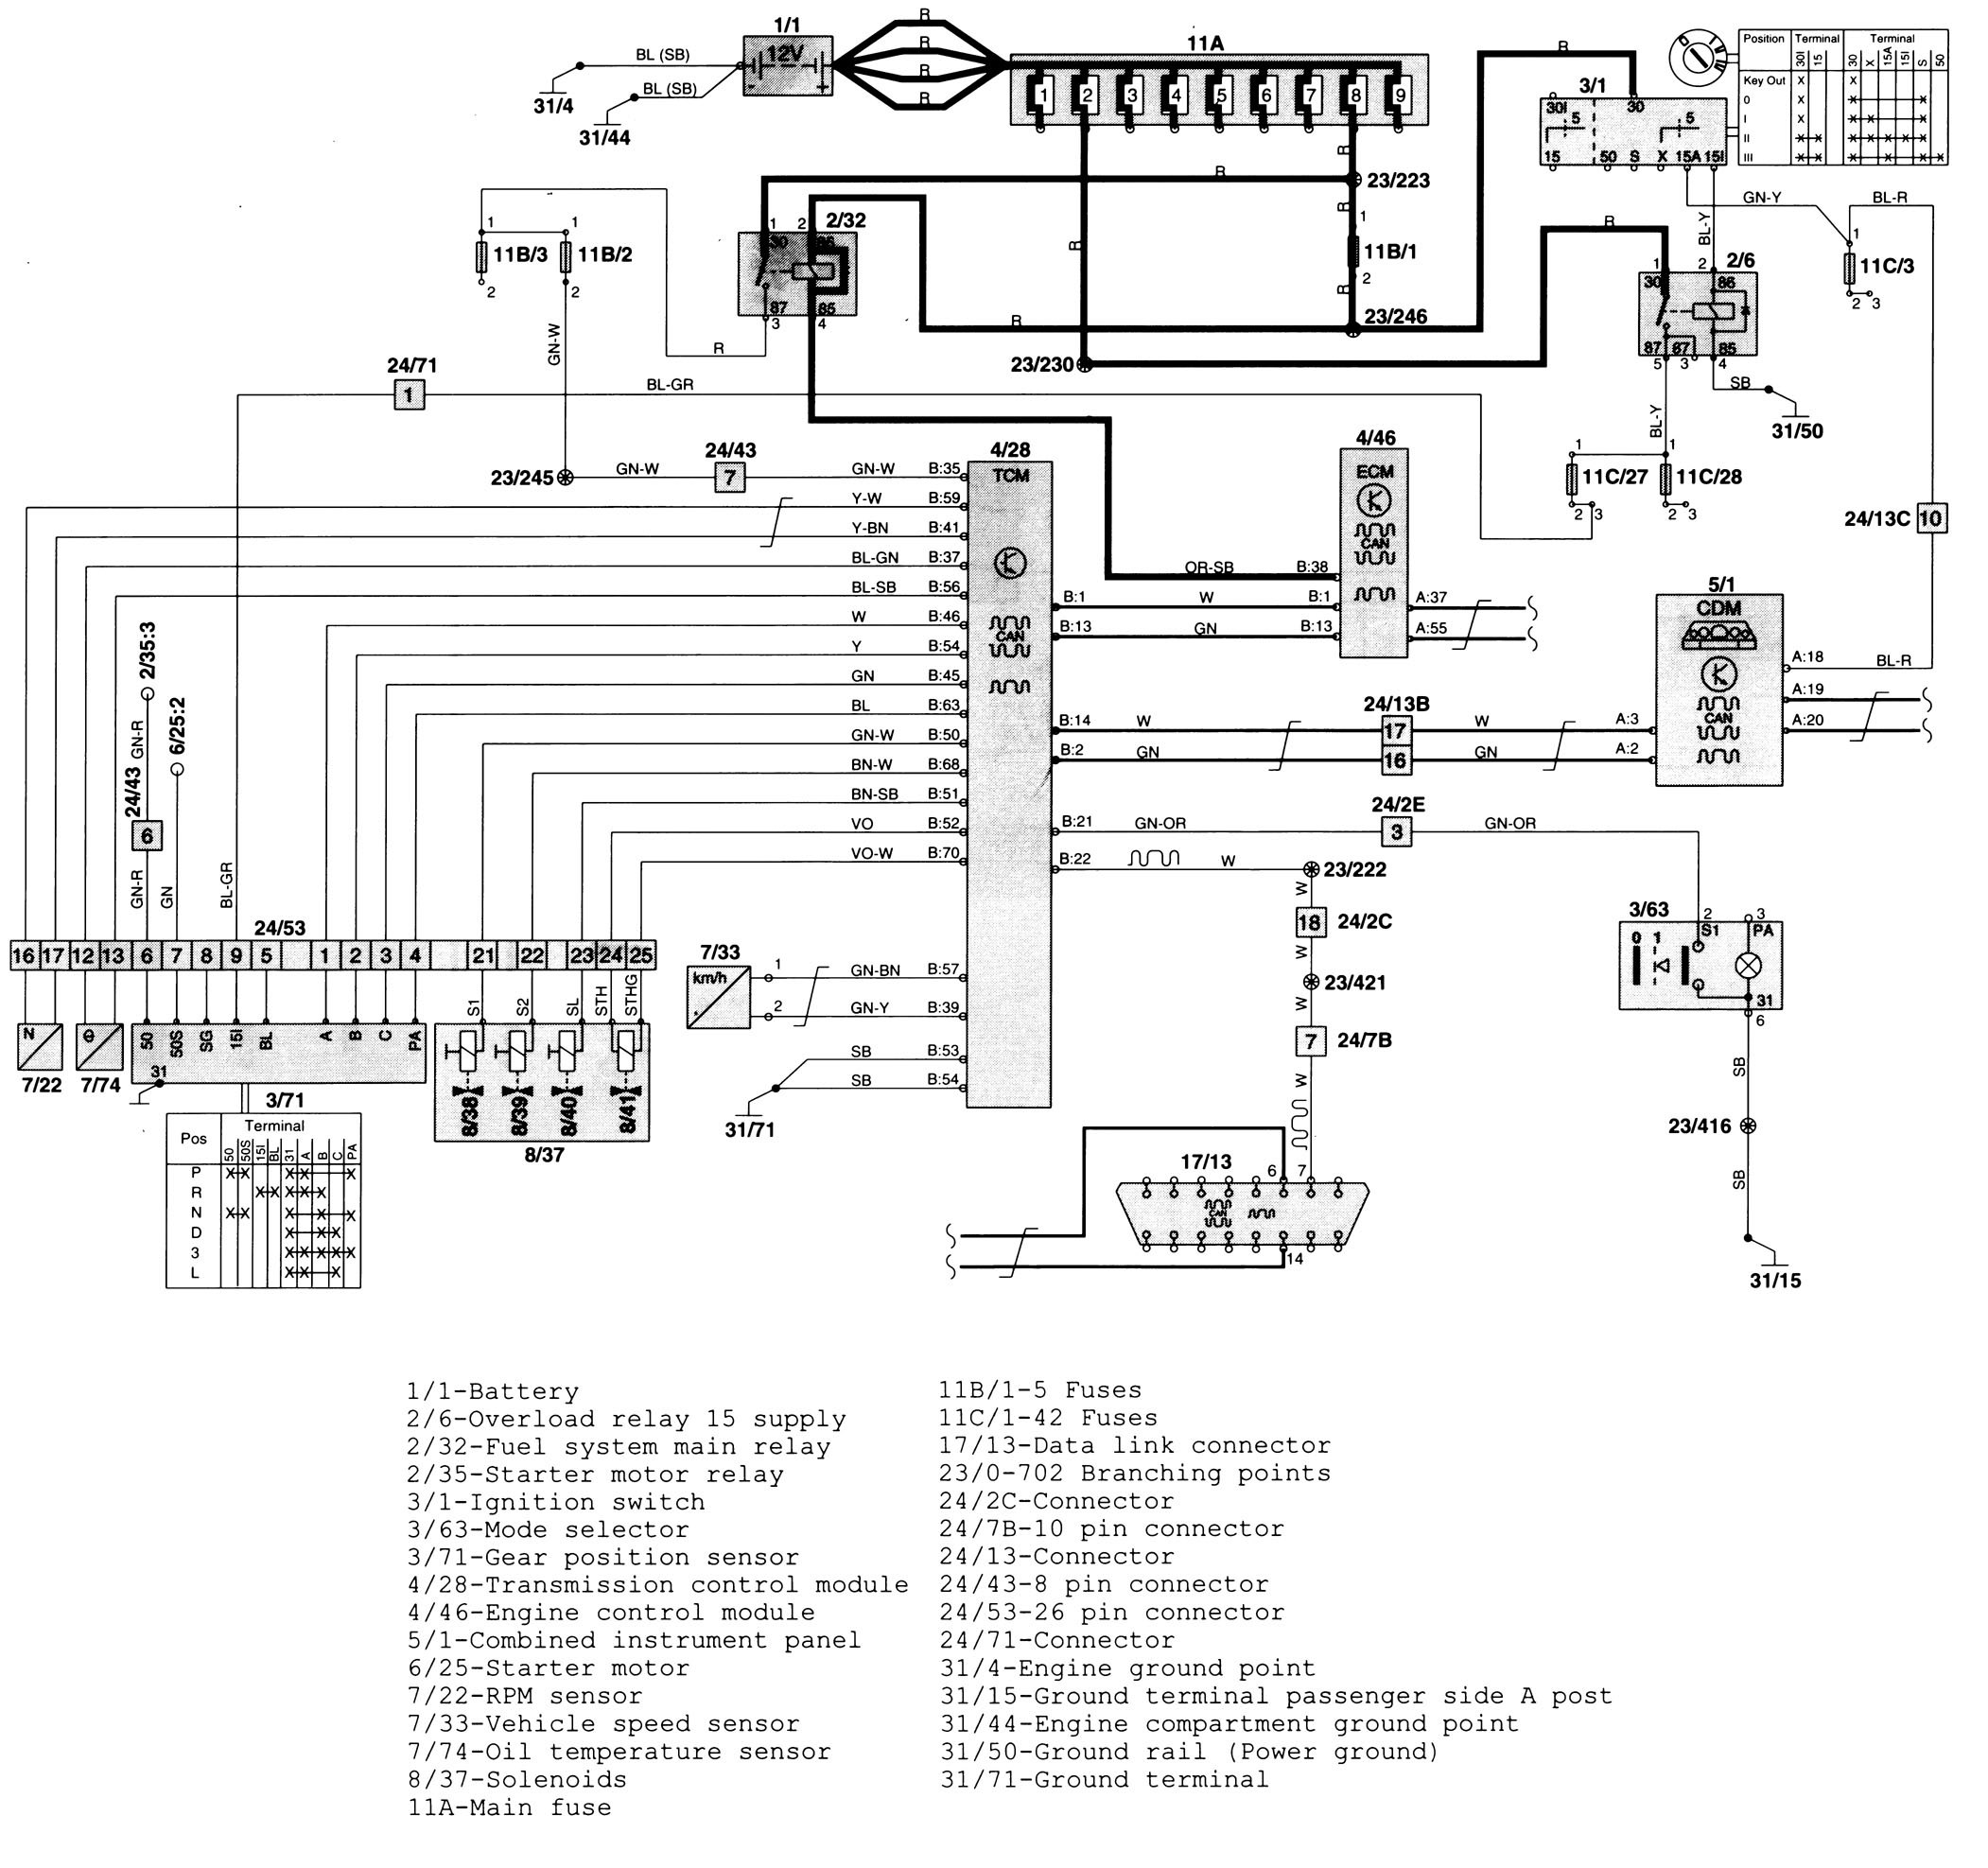 volvo c70 wiring diagram transmission controls 1999 volvo c70 (1999) wiring diagrams transmission controls c70 wiring diagram at soozxer.org